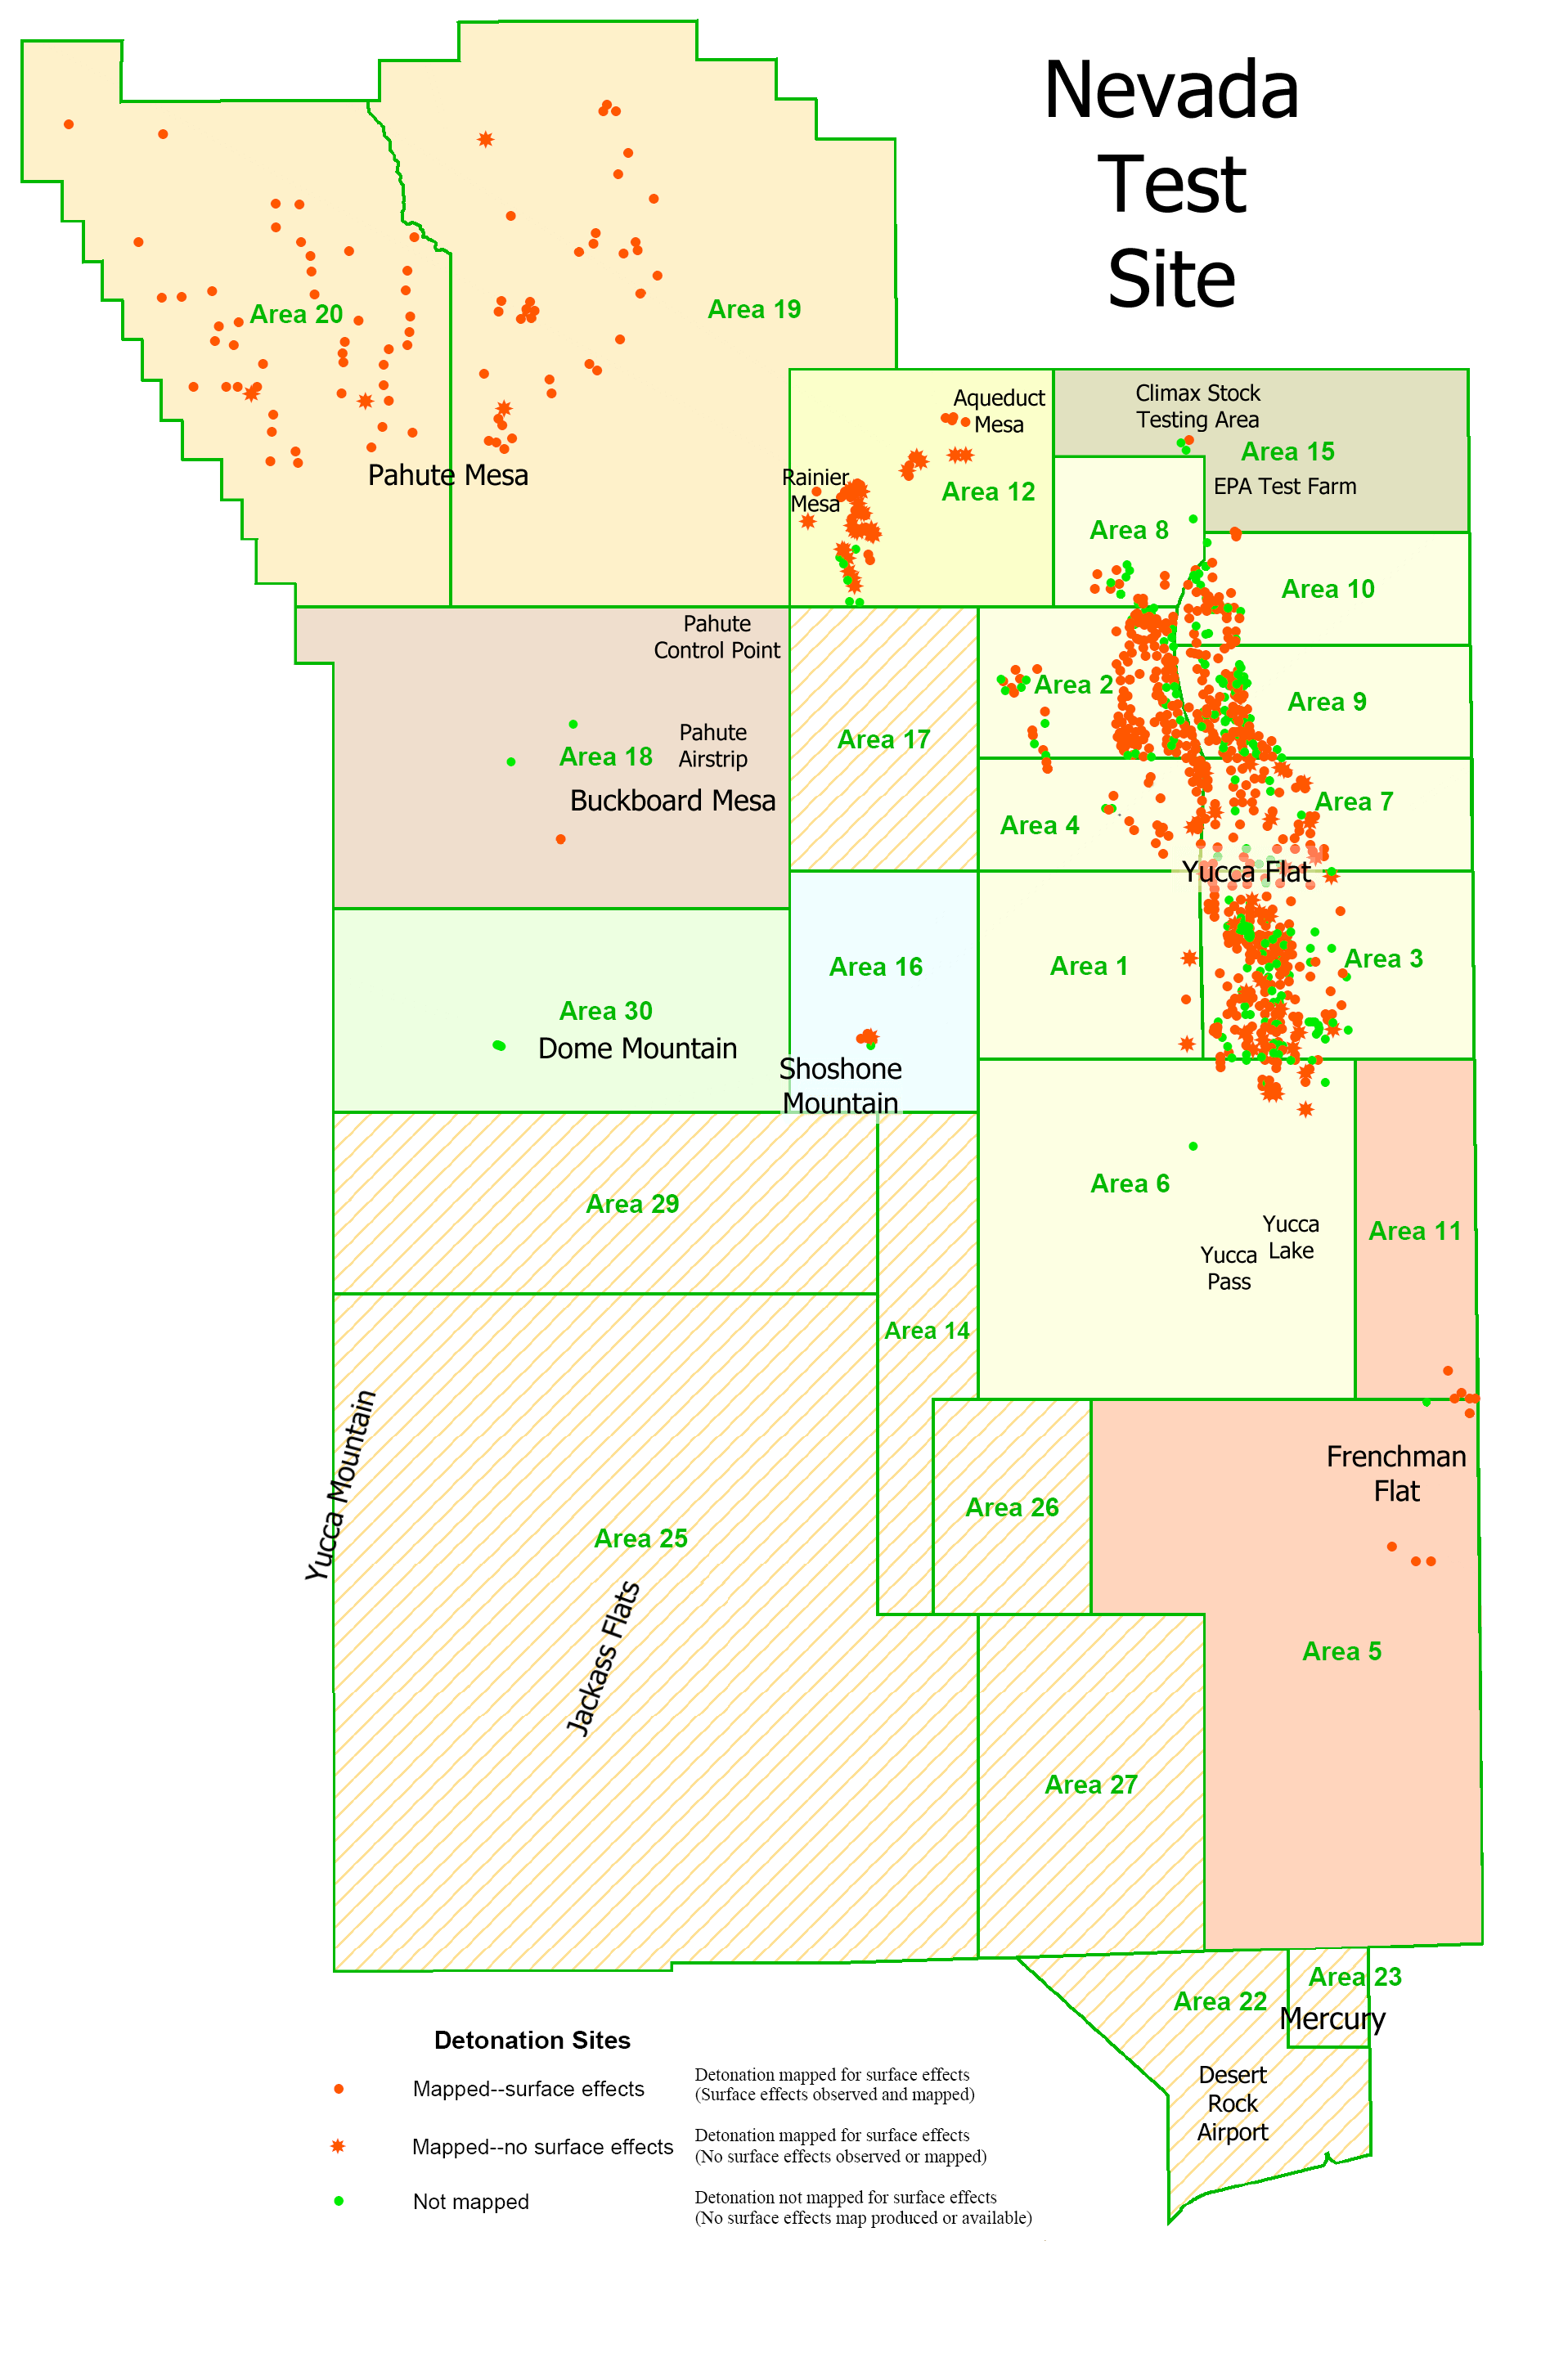 Nevada Test Site Map